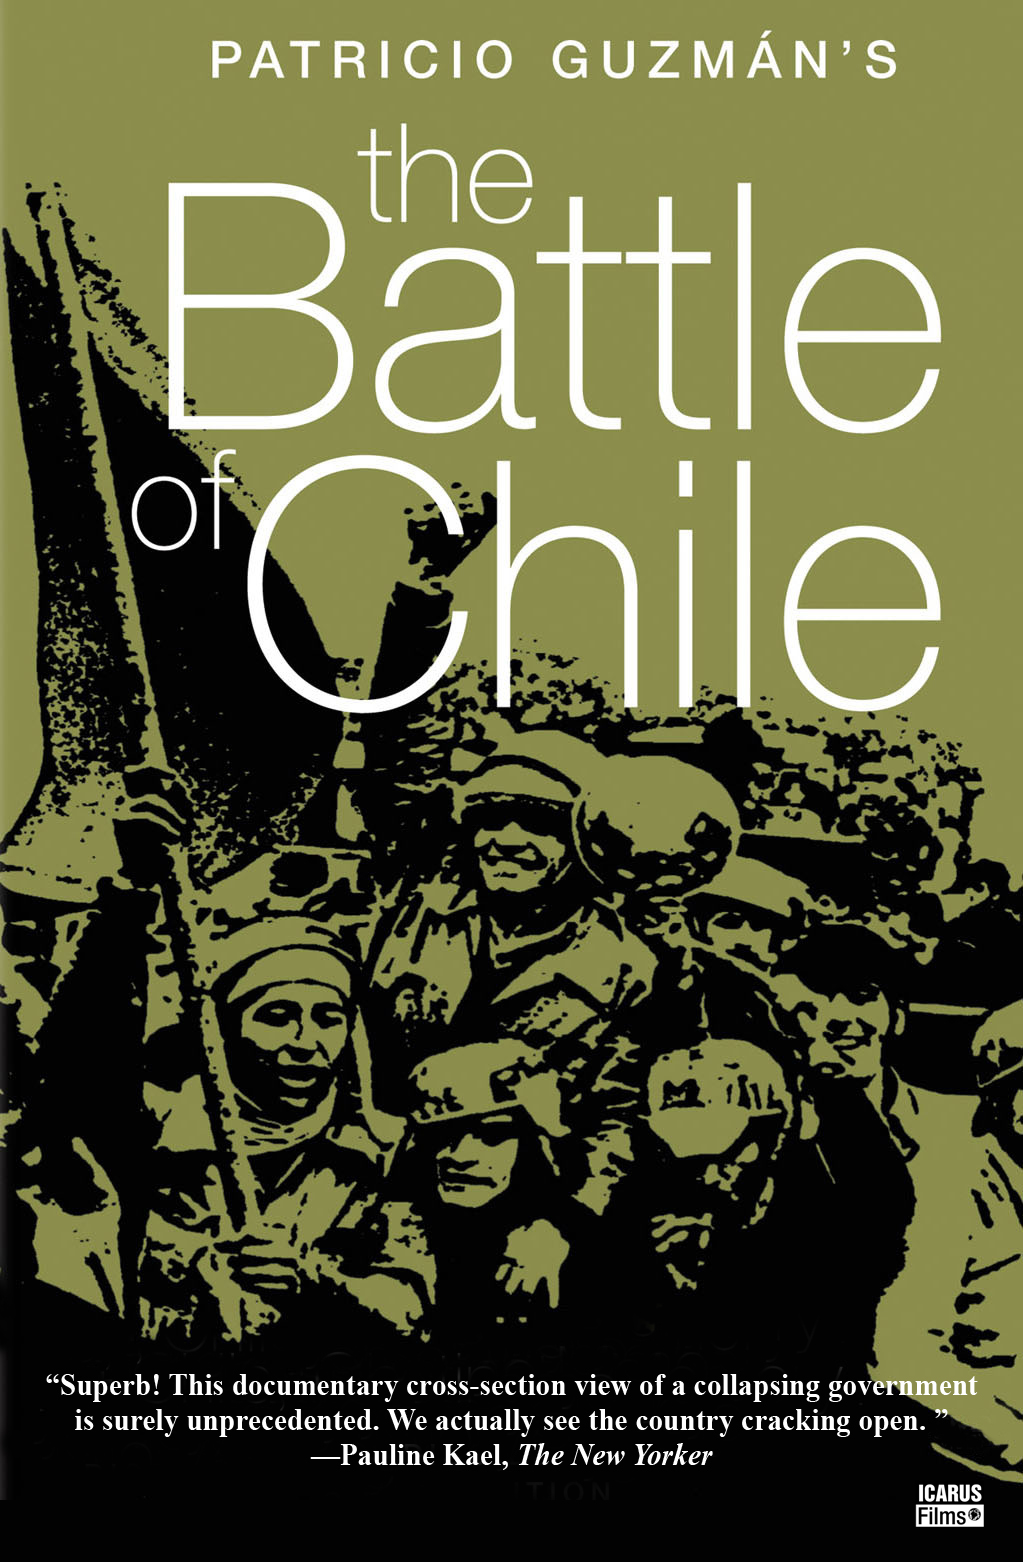 The Battle of Chile: Part III kapak